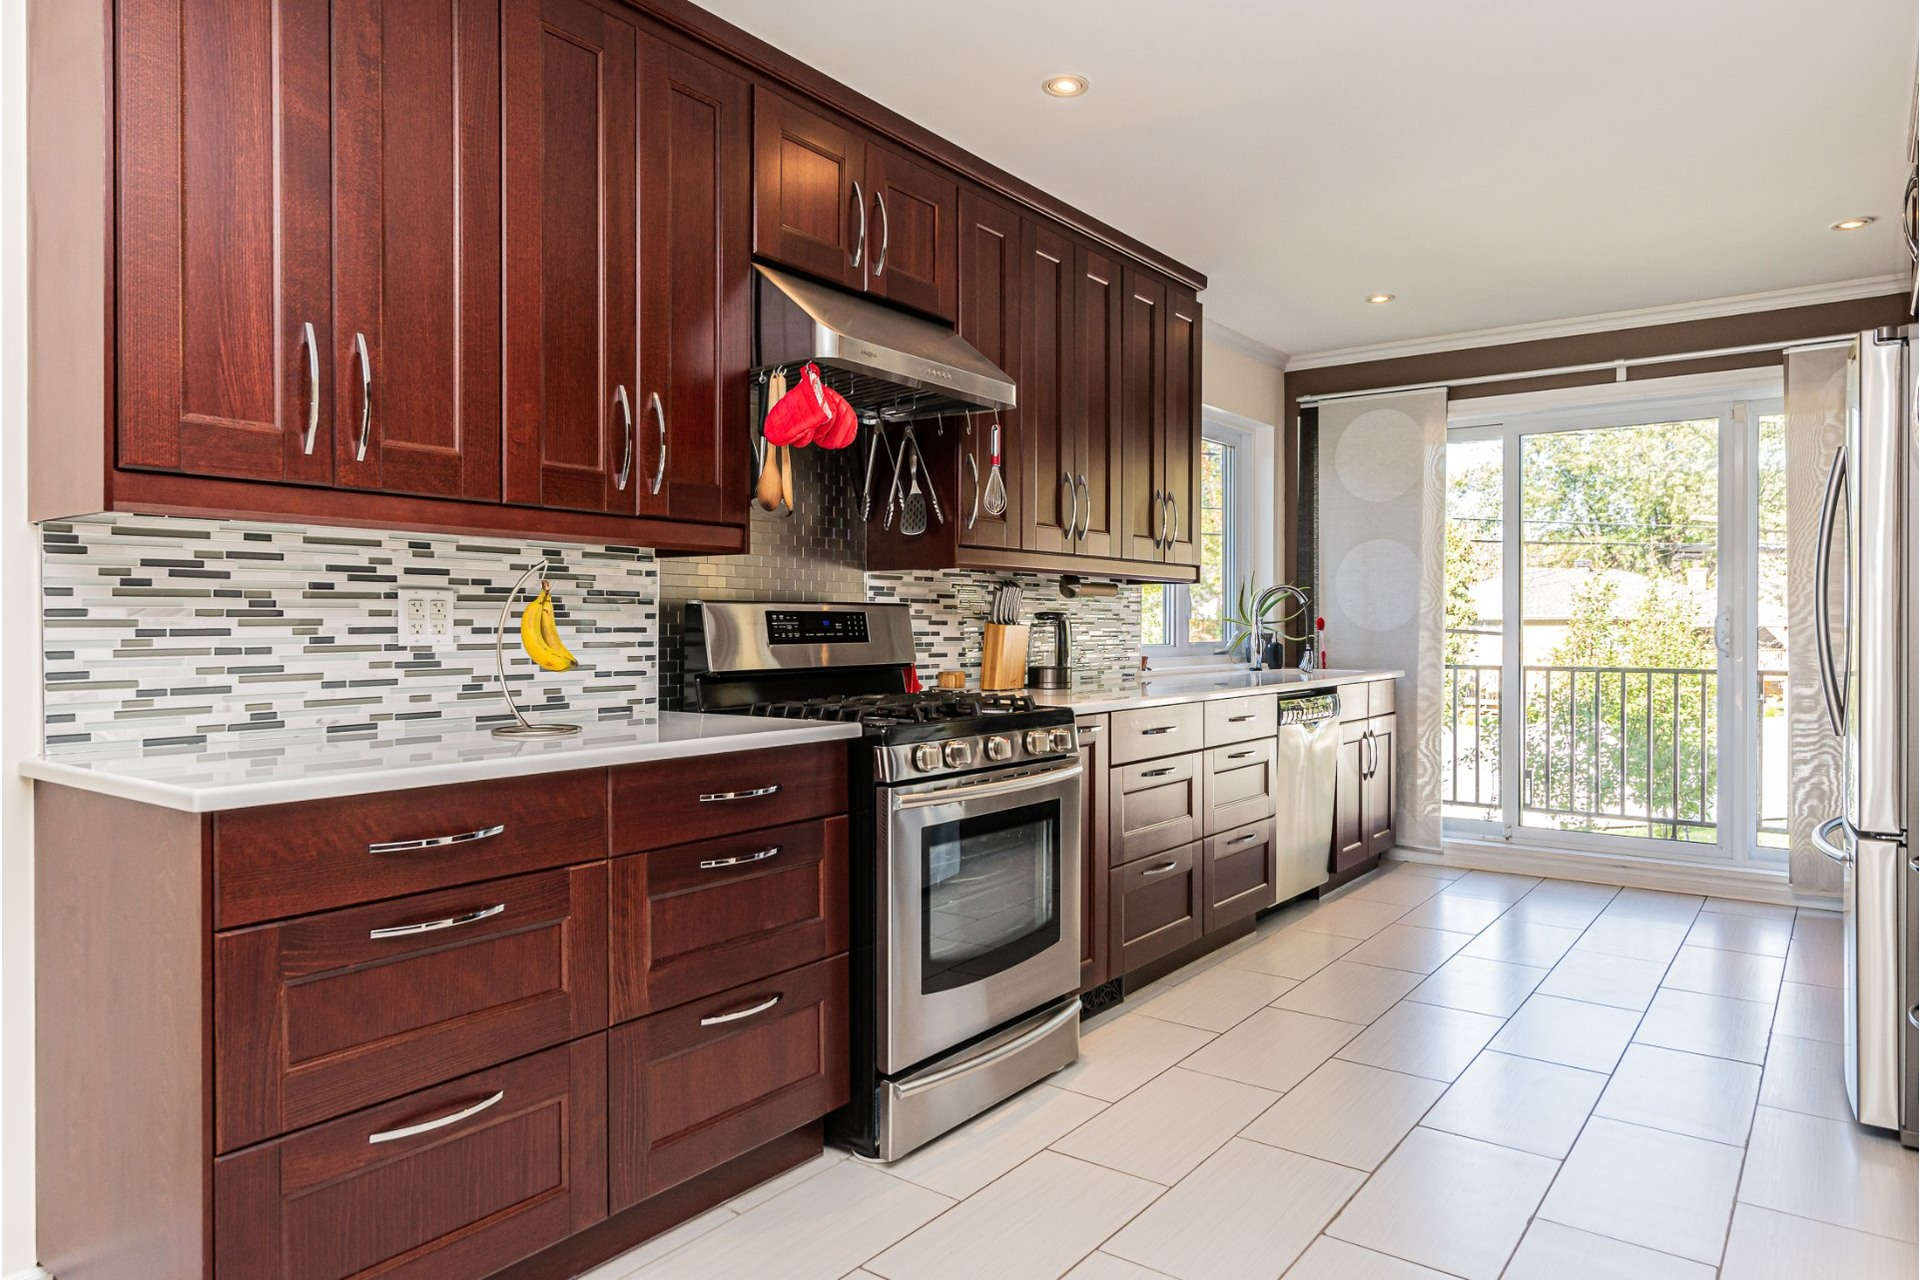 image 5 - House For sale Dorval - 16 rooms